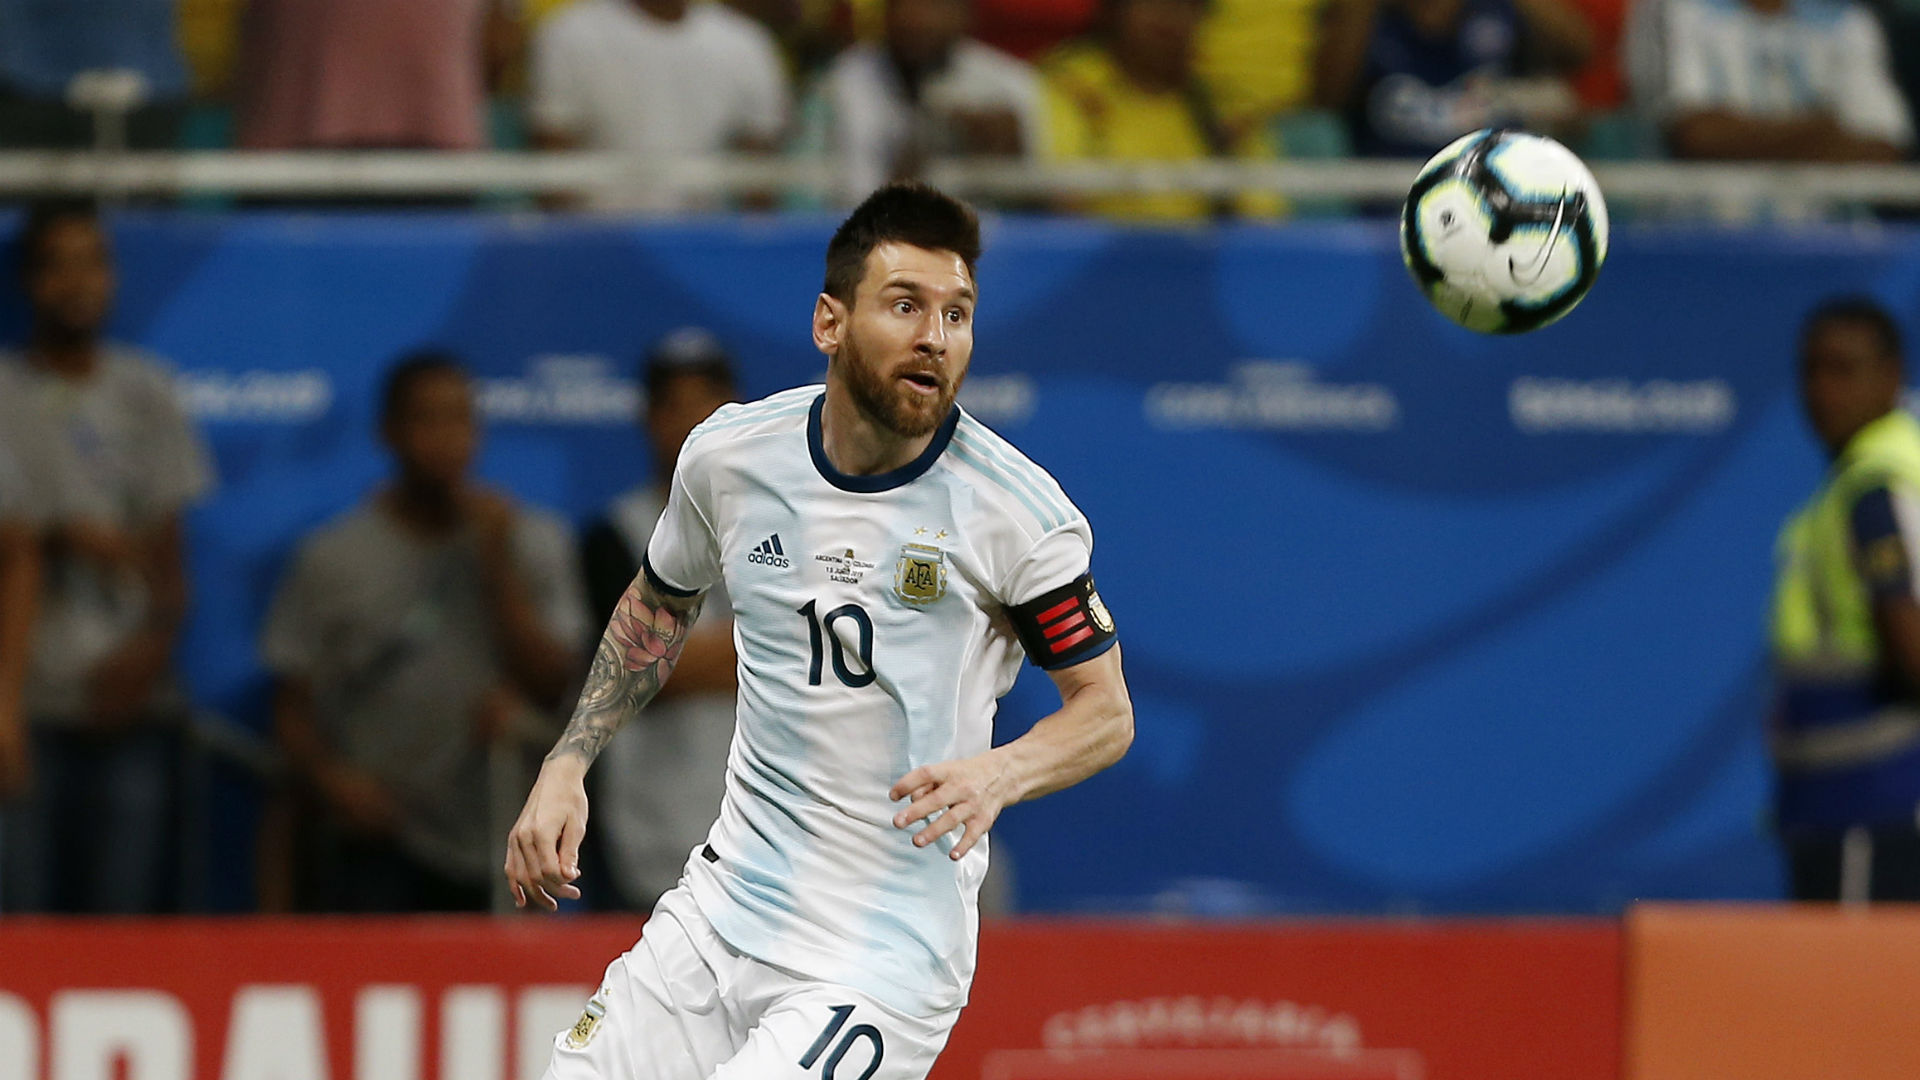 Lionel Messi and Franco Armani save the day for struggling Argentina